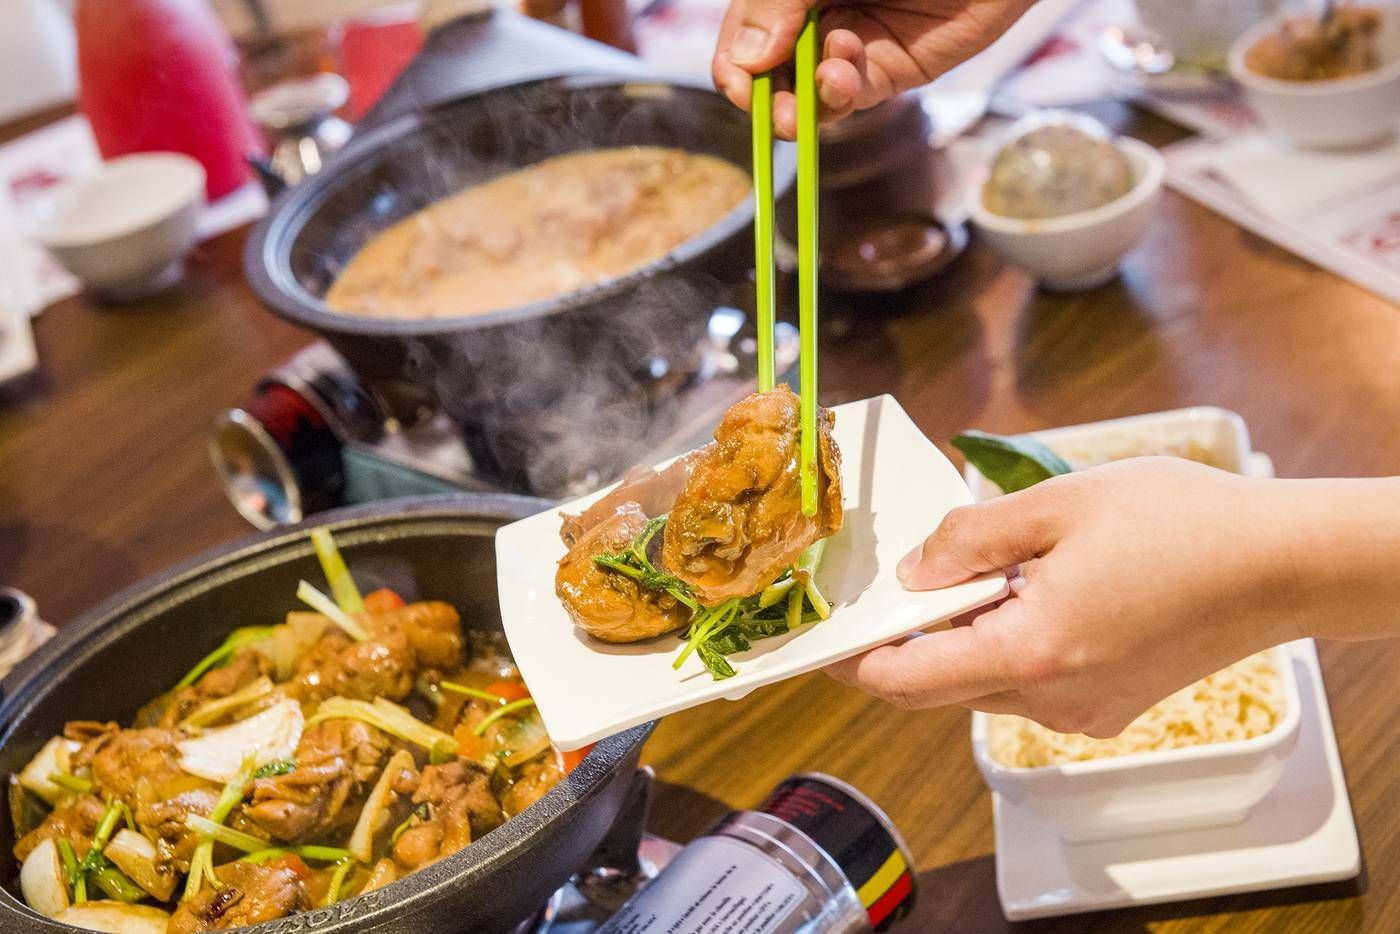 Gogo Chicken Pot Aims To Revolutionize The Way Toronto Looks At Ayce Hot Pot It S The Only Restaurant Of Its Kind In The C Chicken Pot Foodie Destinations Eat